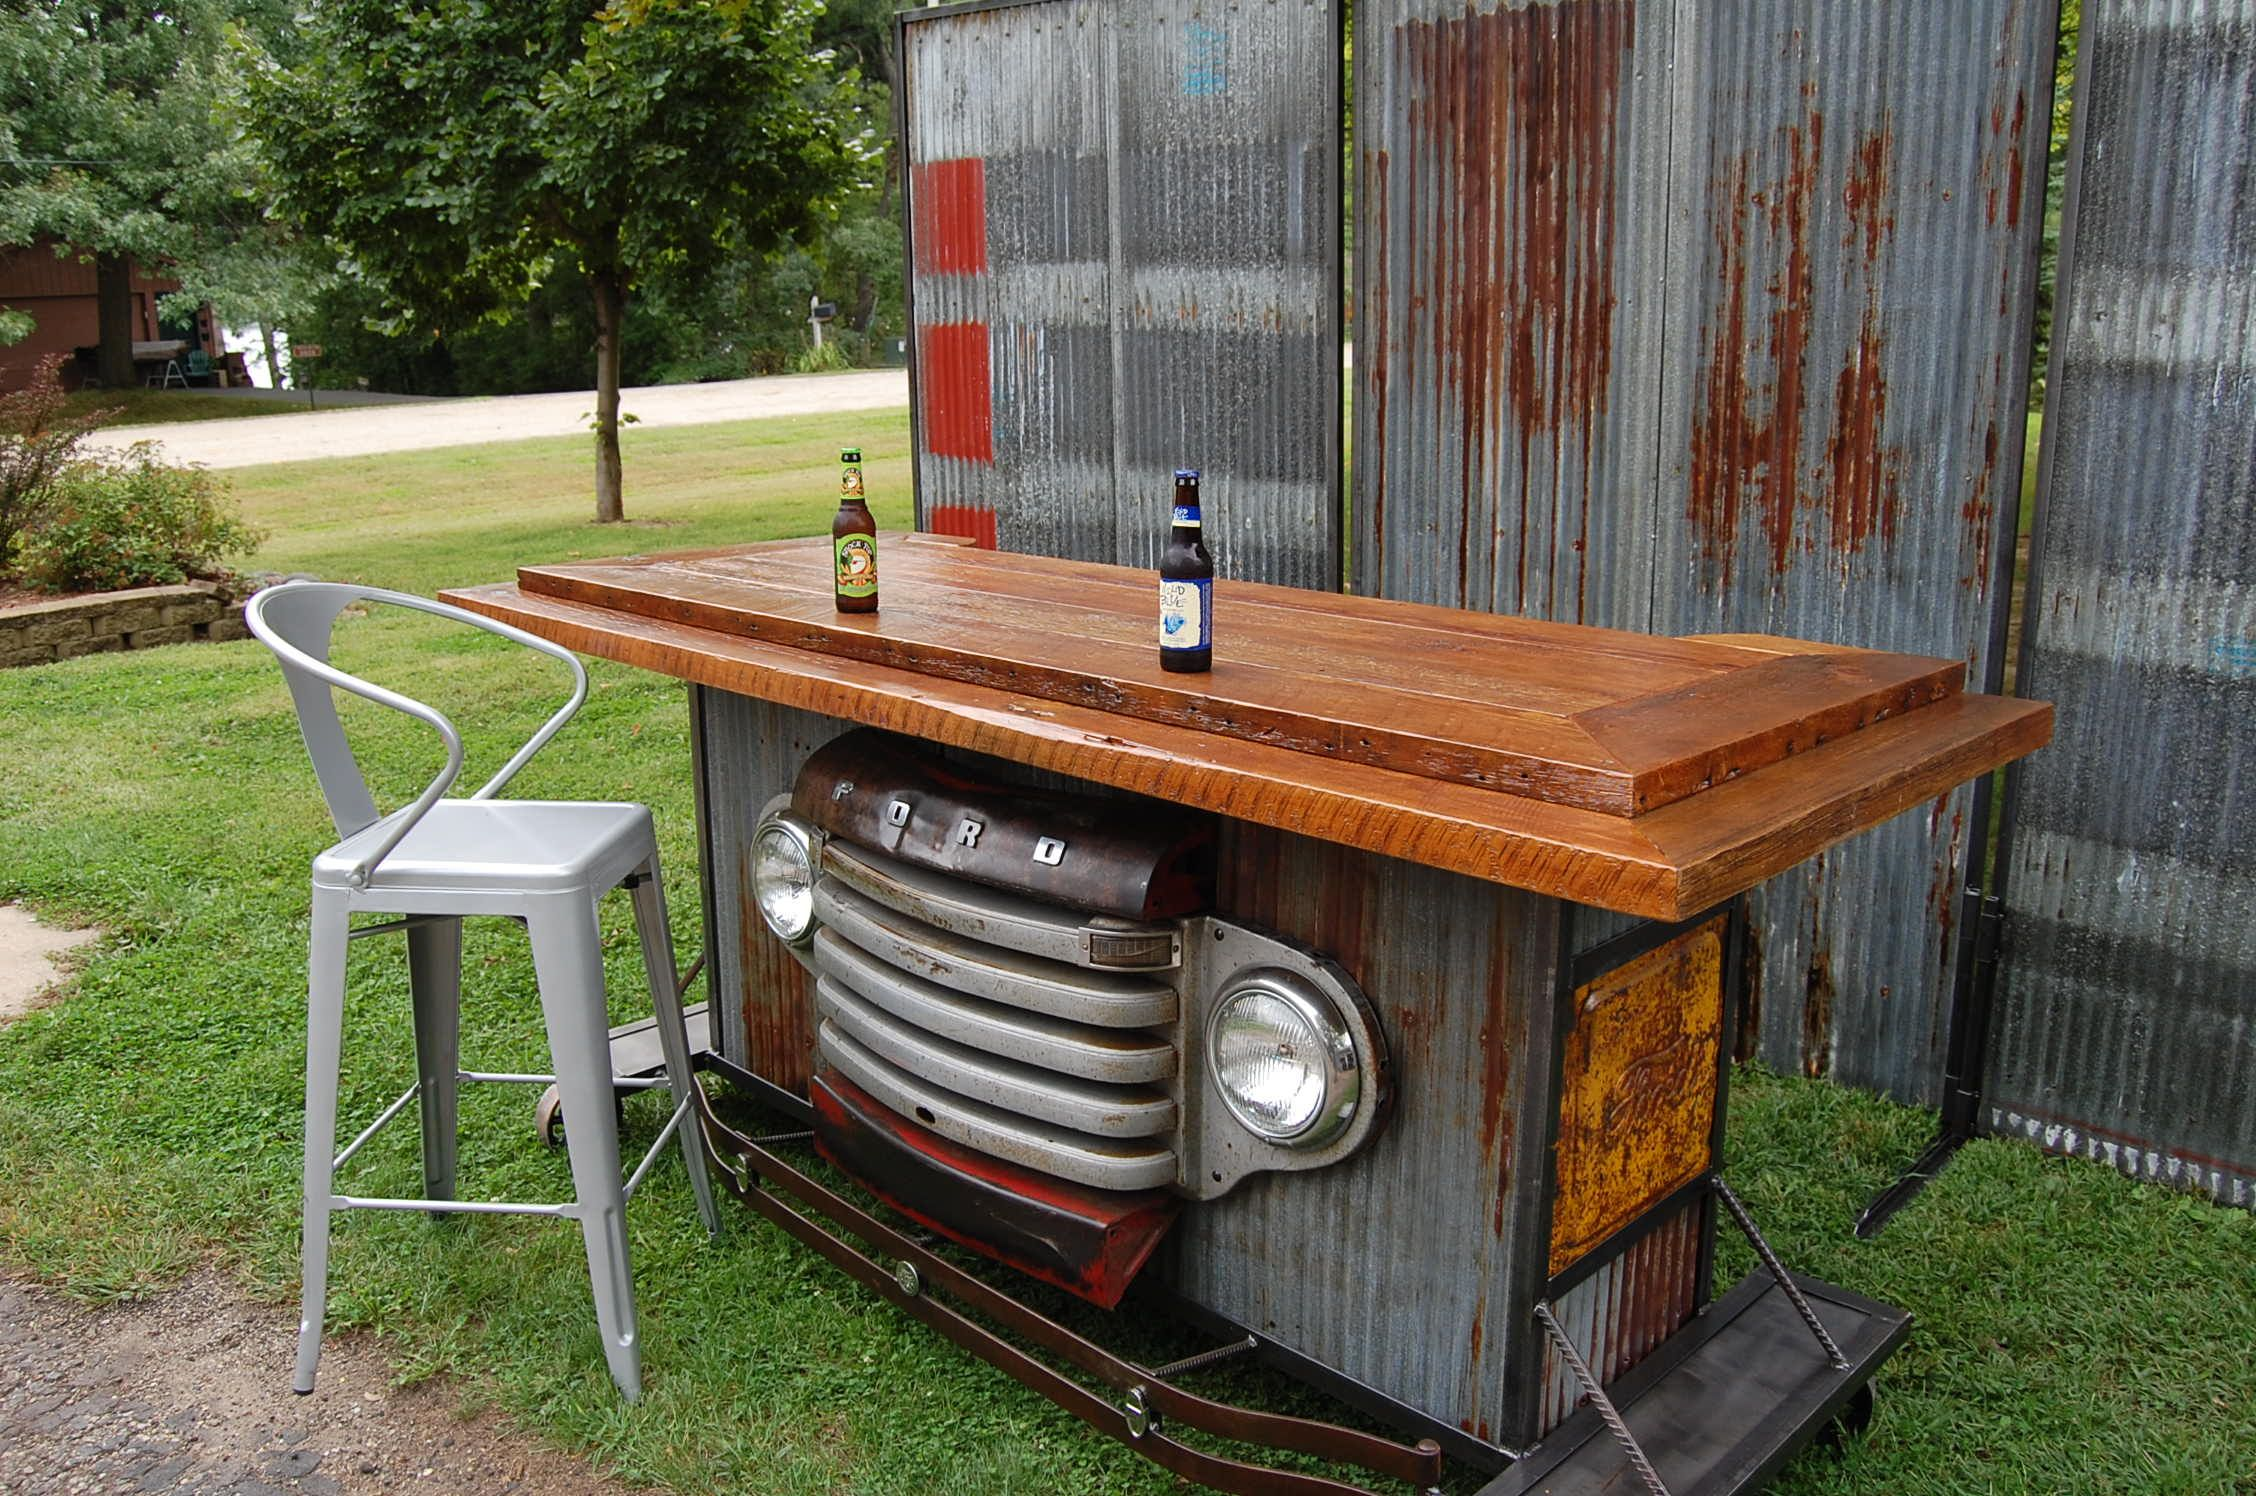 Wood bar barnwood bar barnwood furniture rustic furniture basement - Bar Made From Reclaimed Barn Wood A Vintage 49 Ford Grille Vintage Roof Tin On Cast Iron Casters Check Us Out At Sawtooth Innovations On Face Book